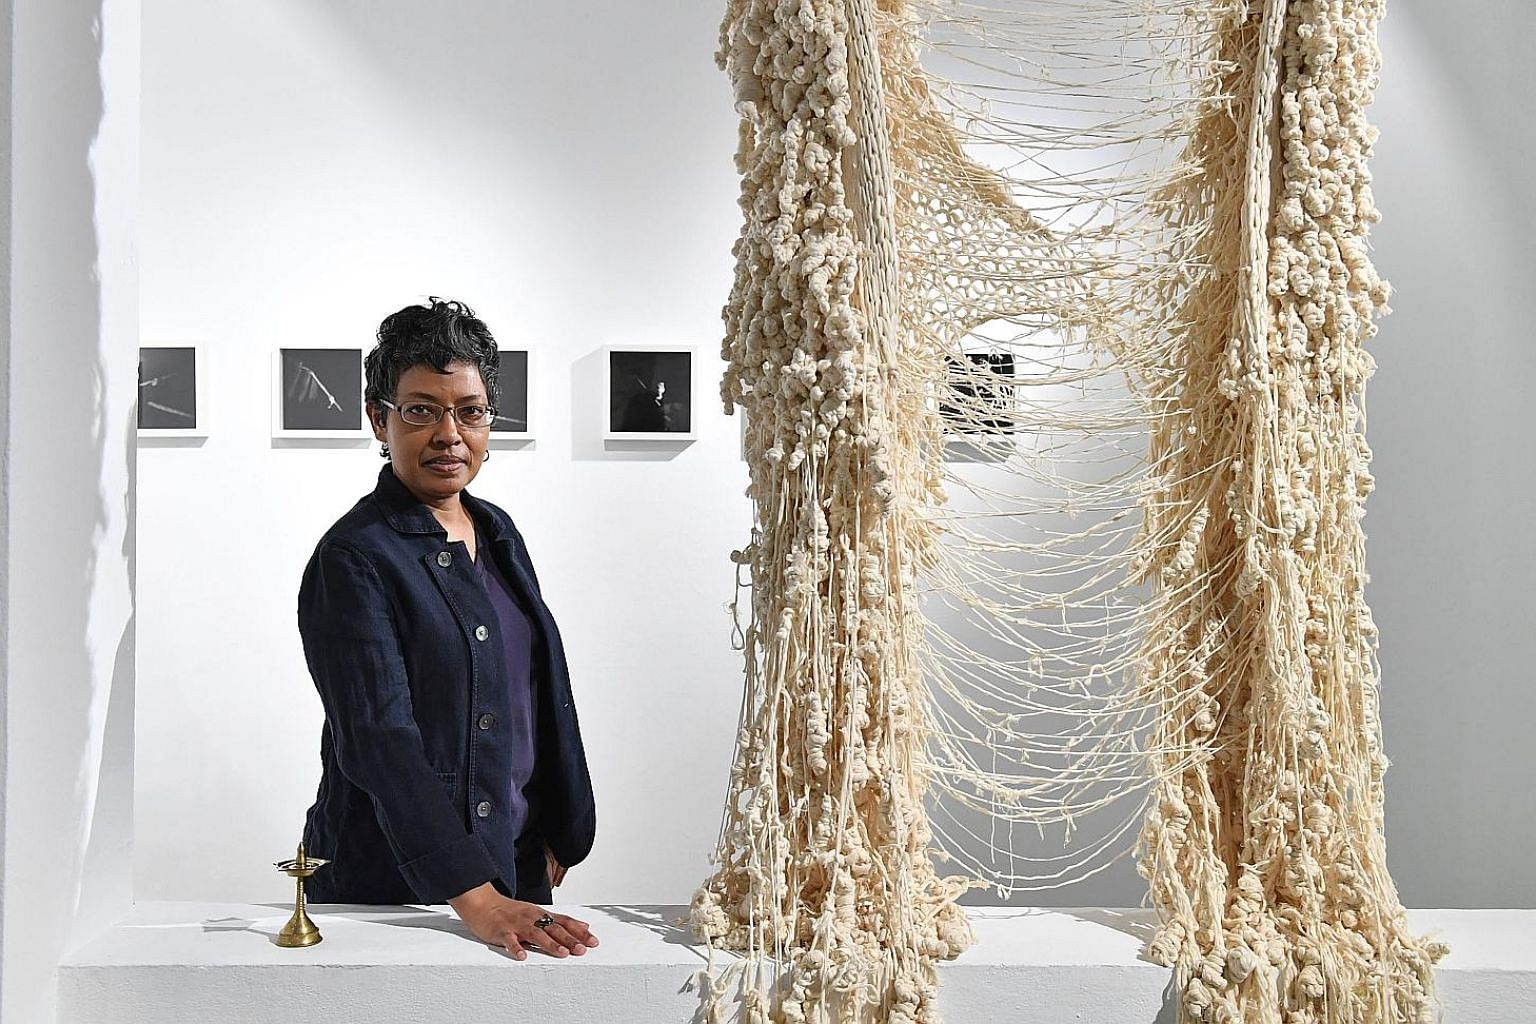 Dr Susie Lingham with India-based artist Mithun Jayaram's woven and knotted installation at the You, Other: I, Another exhibition.